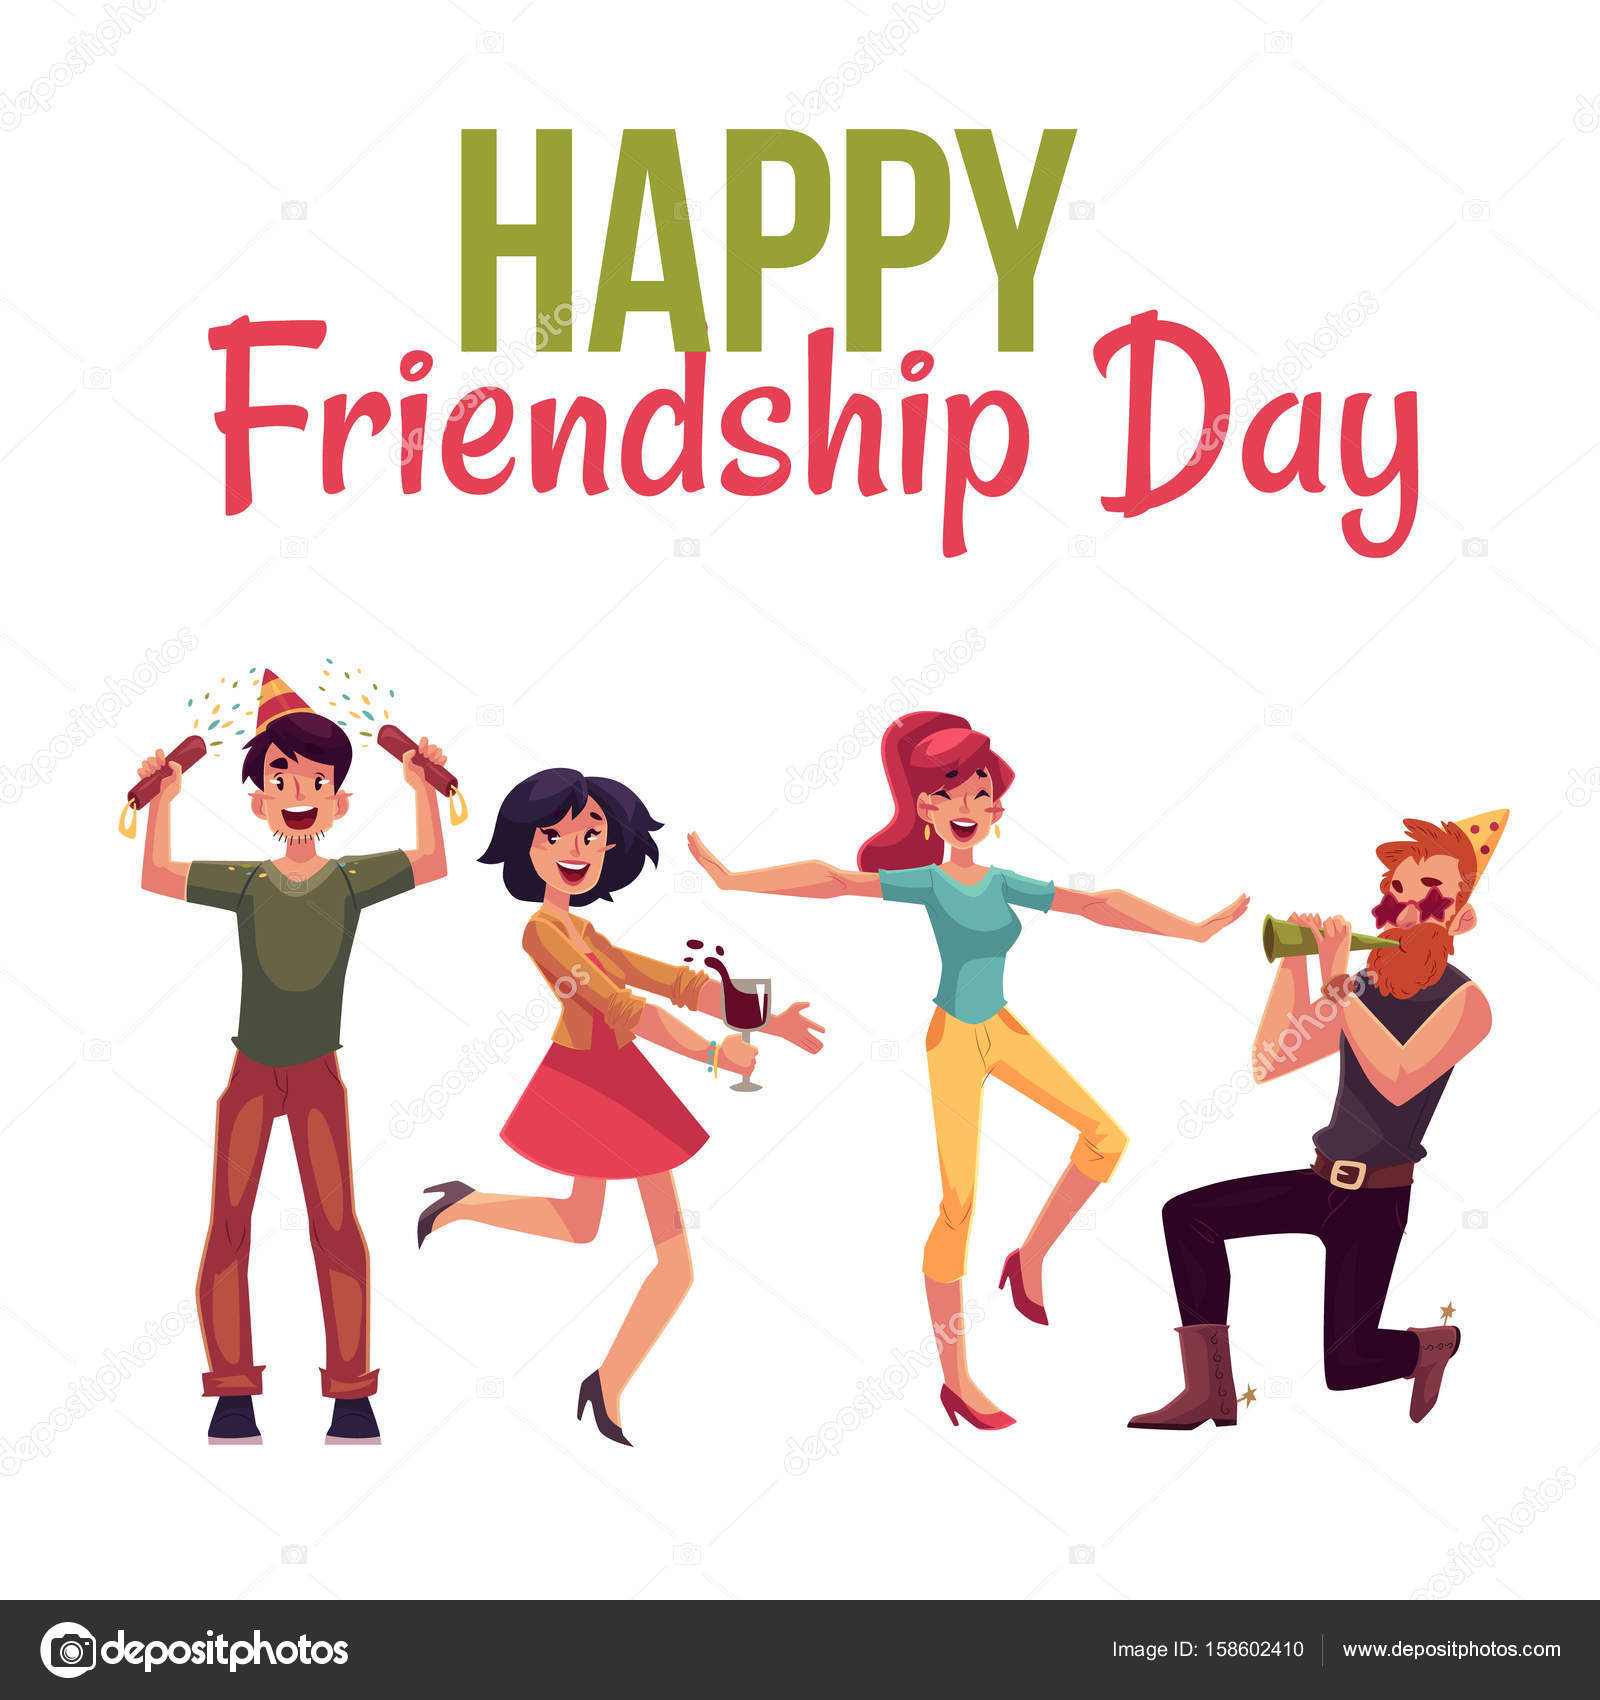 Happy Friendship Day Greeting Card Design With Friends Having Fun At A  Party, Cartoon Vector Illustration Isolated On White Background.